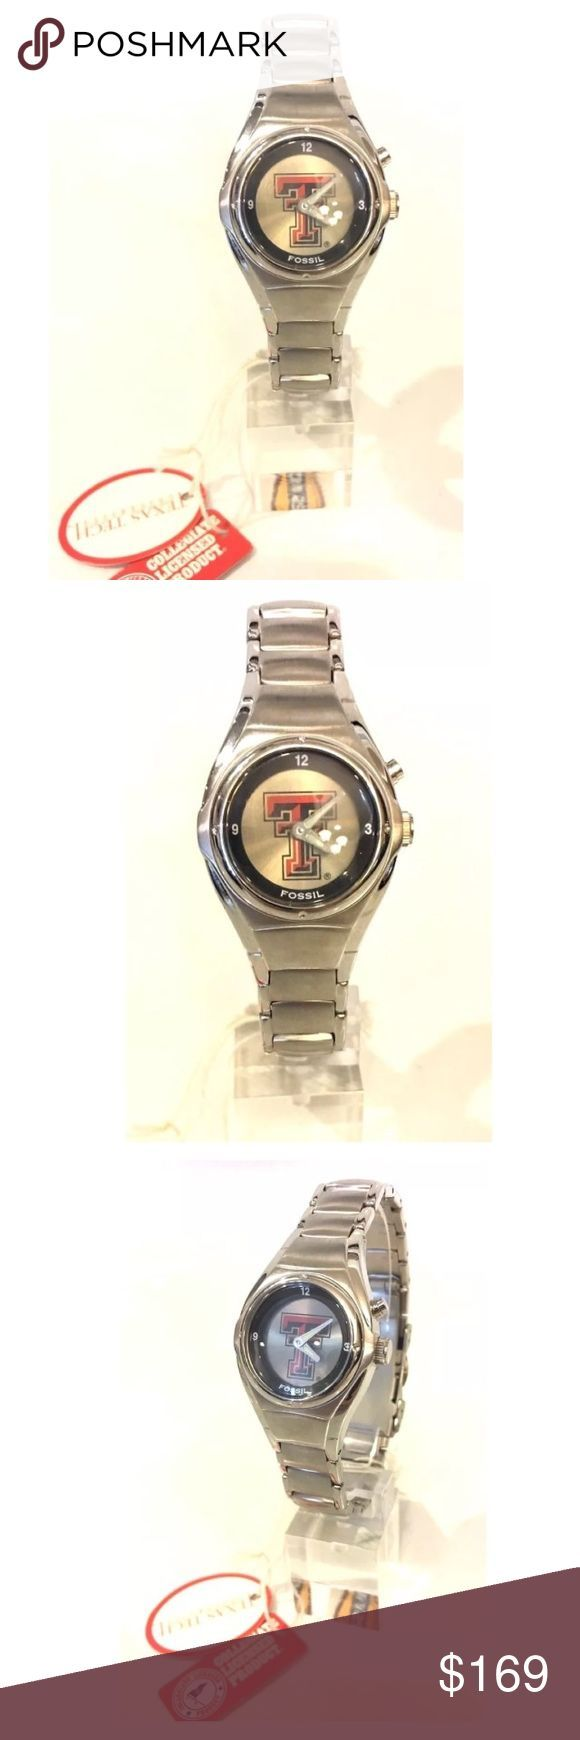 """NWT Fossil Texas Tech University Animated Watch Rare - No longer in stores!!!  New with Tags Fossil Ladies Texas Tech University """"Animated"""" Watch The face can either be plain with a black ring or have the Texas Tech logo on it. You choose by pushing a button on the side. The band is brushed silver and shiny silver. Comes in original paper shipping box. Does not come with a tin. Style number is L12386 Official licensed product. Fossil Accessories Watches"""